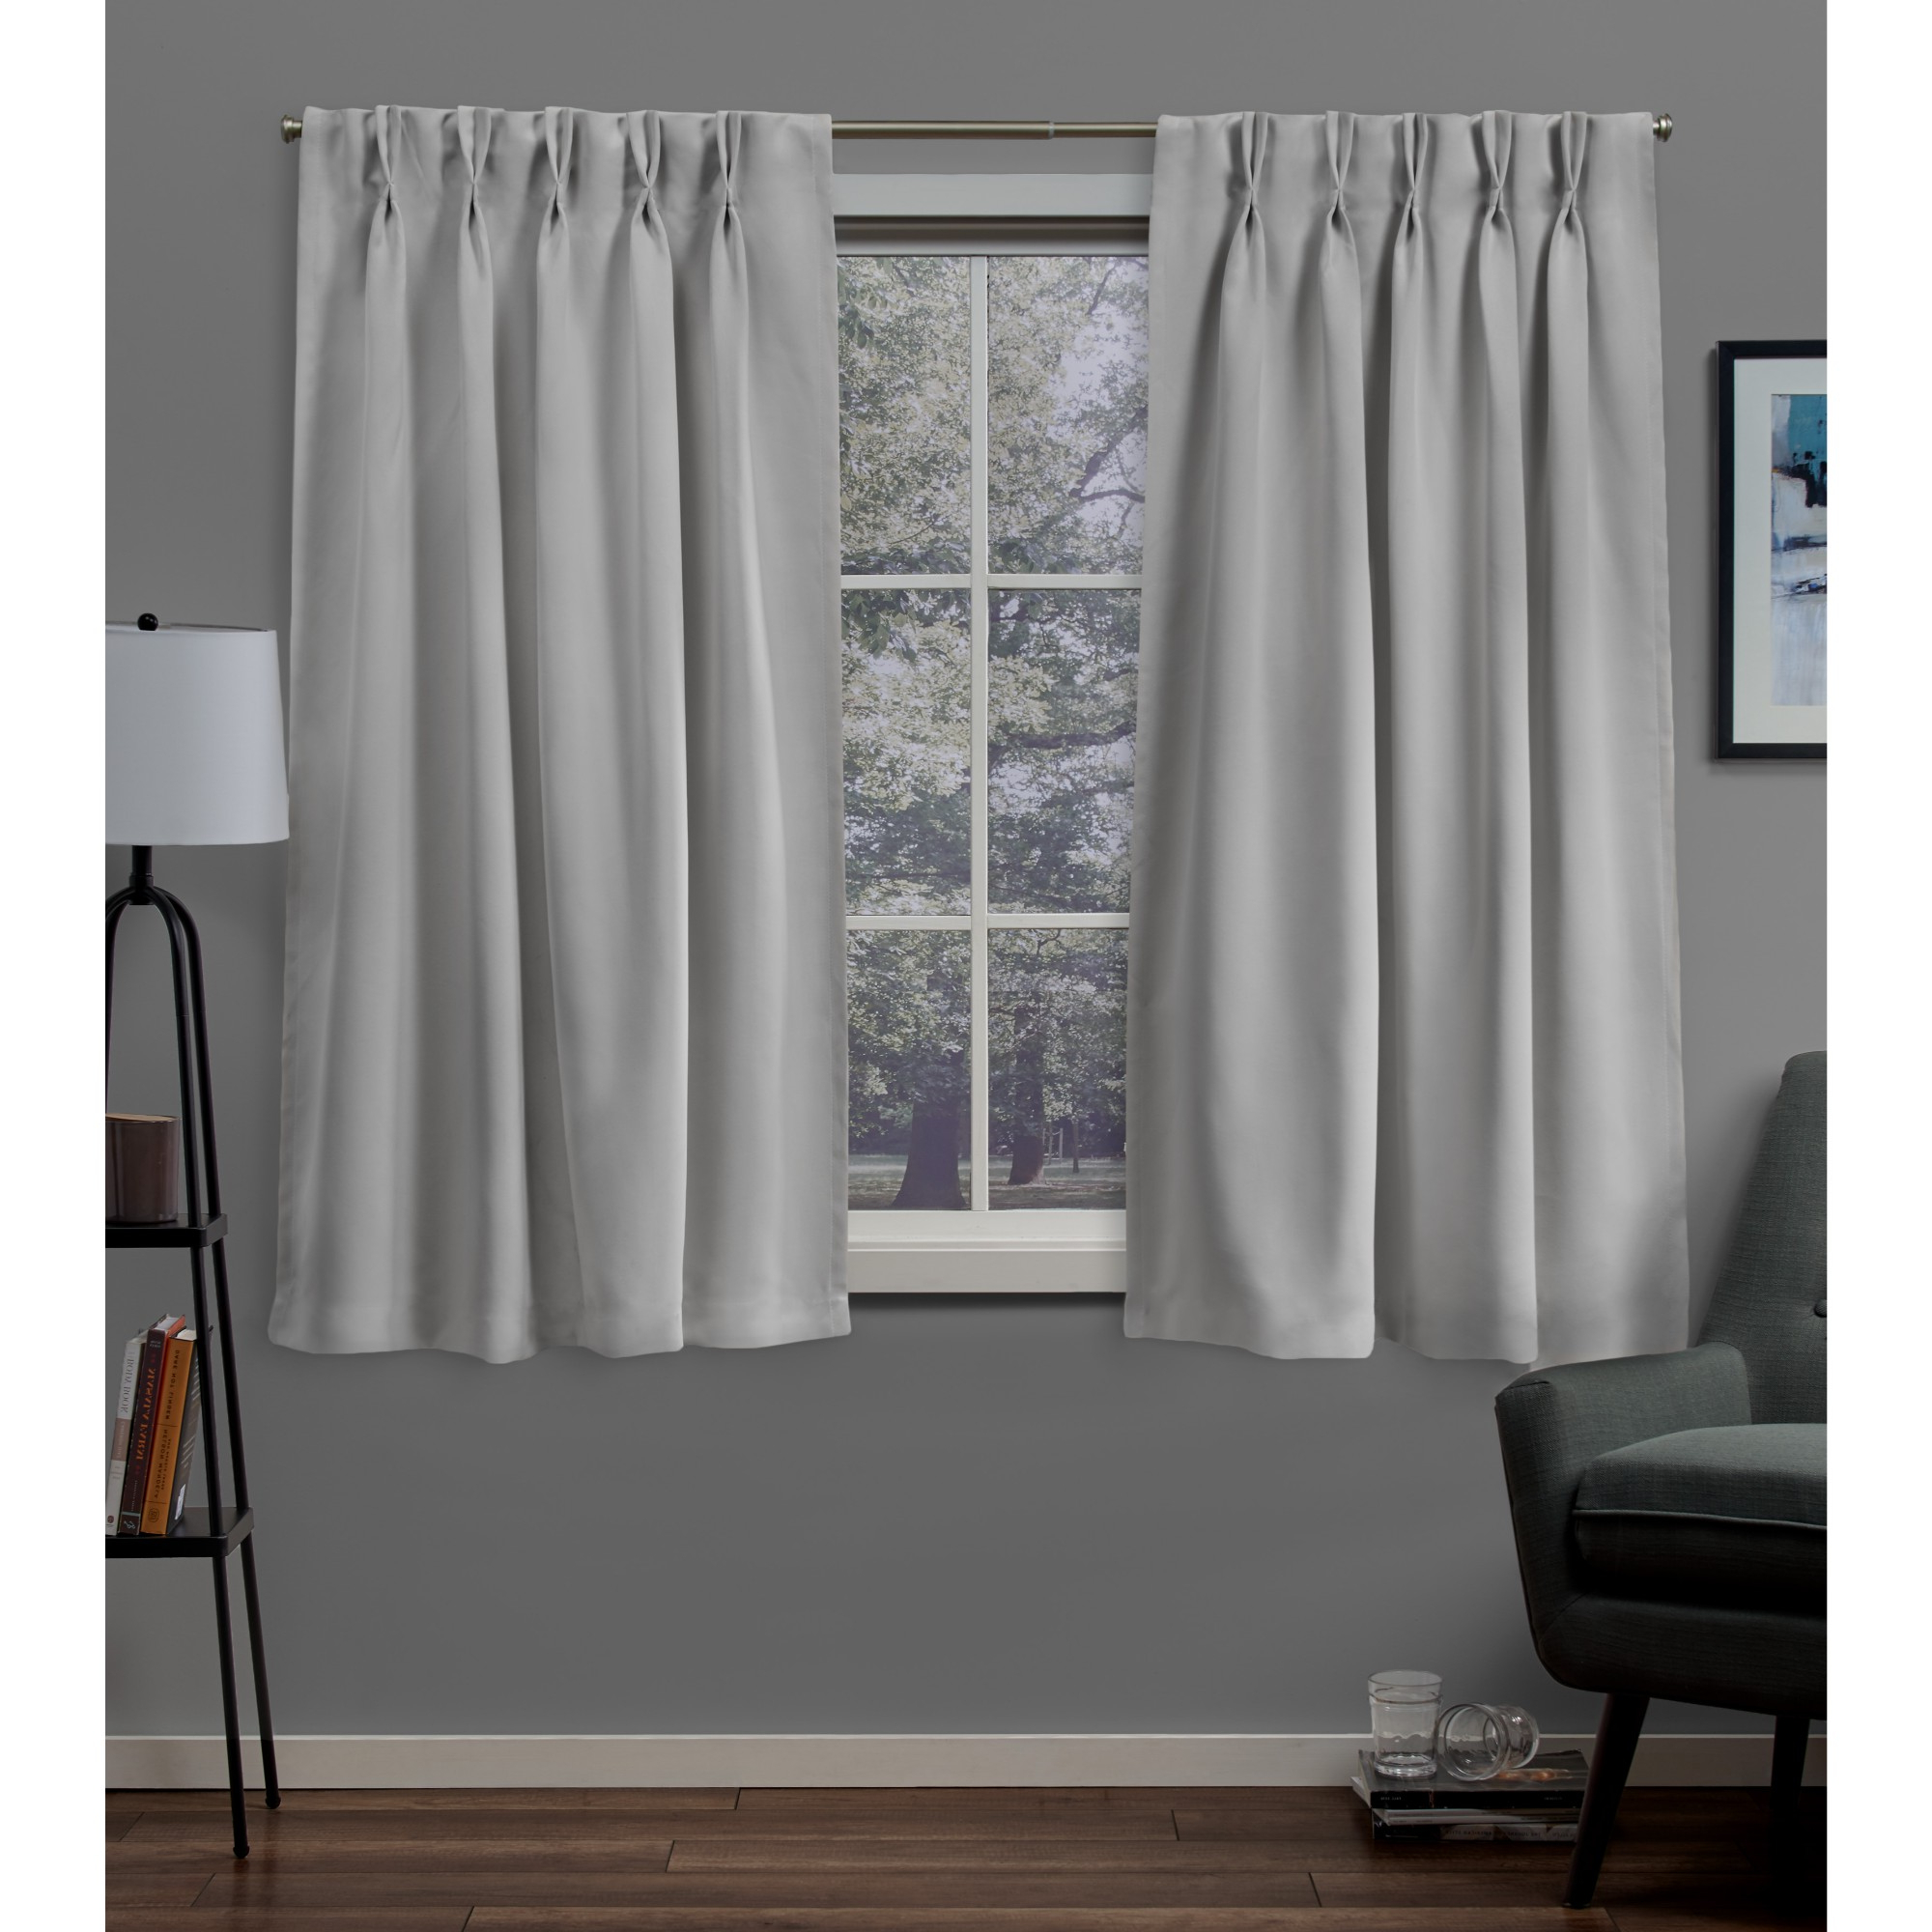 Well Known Sateen Woven Blackout Curtain Panel Pairs With Pinch Pleat Top In Sateen Woven Blackout Pinch Pleat Window Curtain Panel Pair (View 20 of 20)